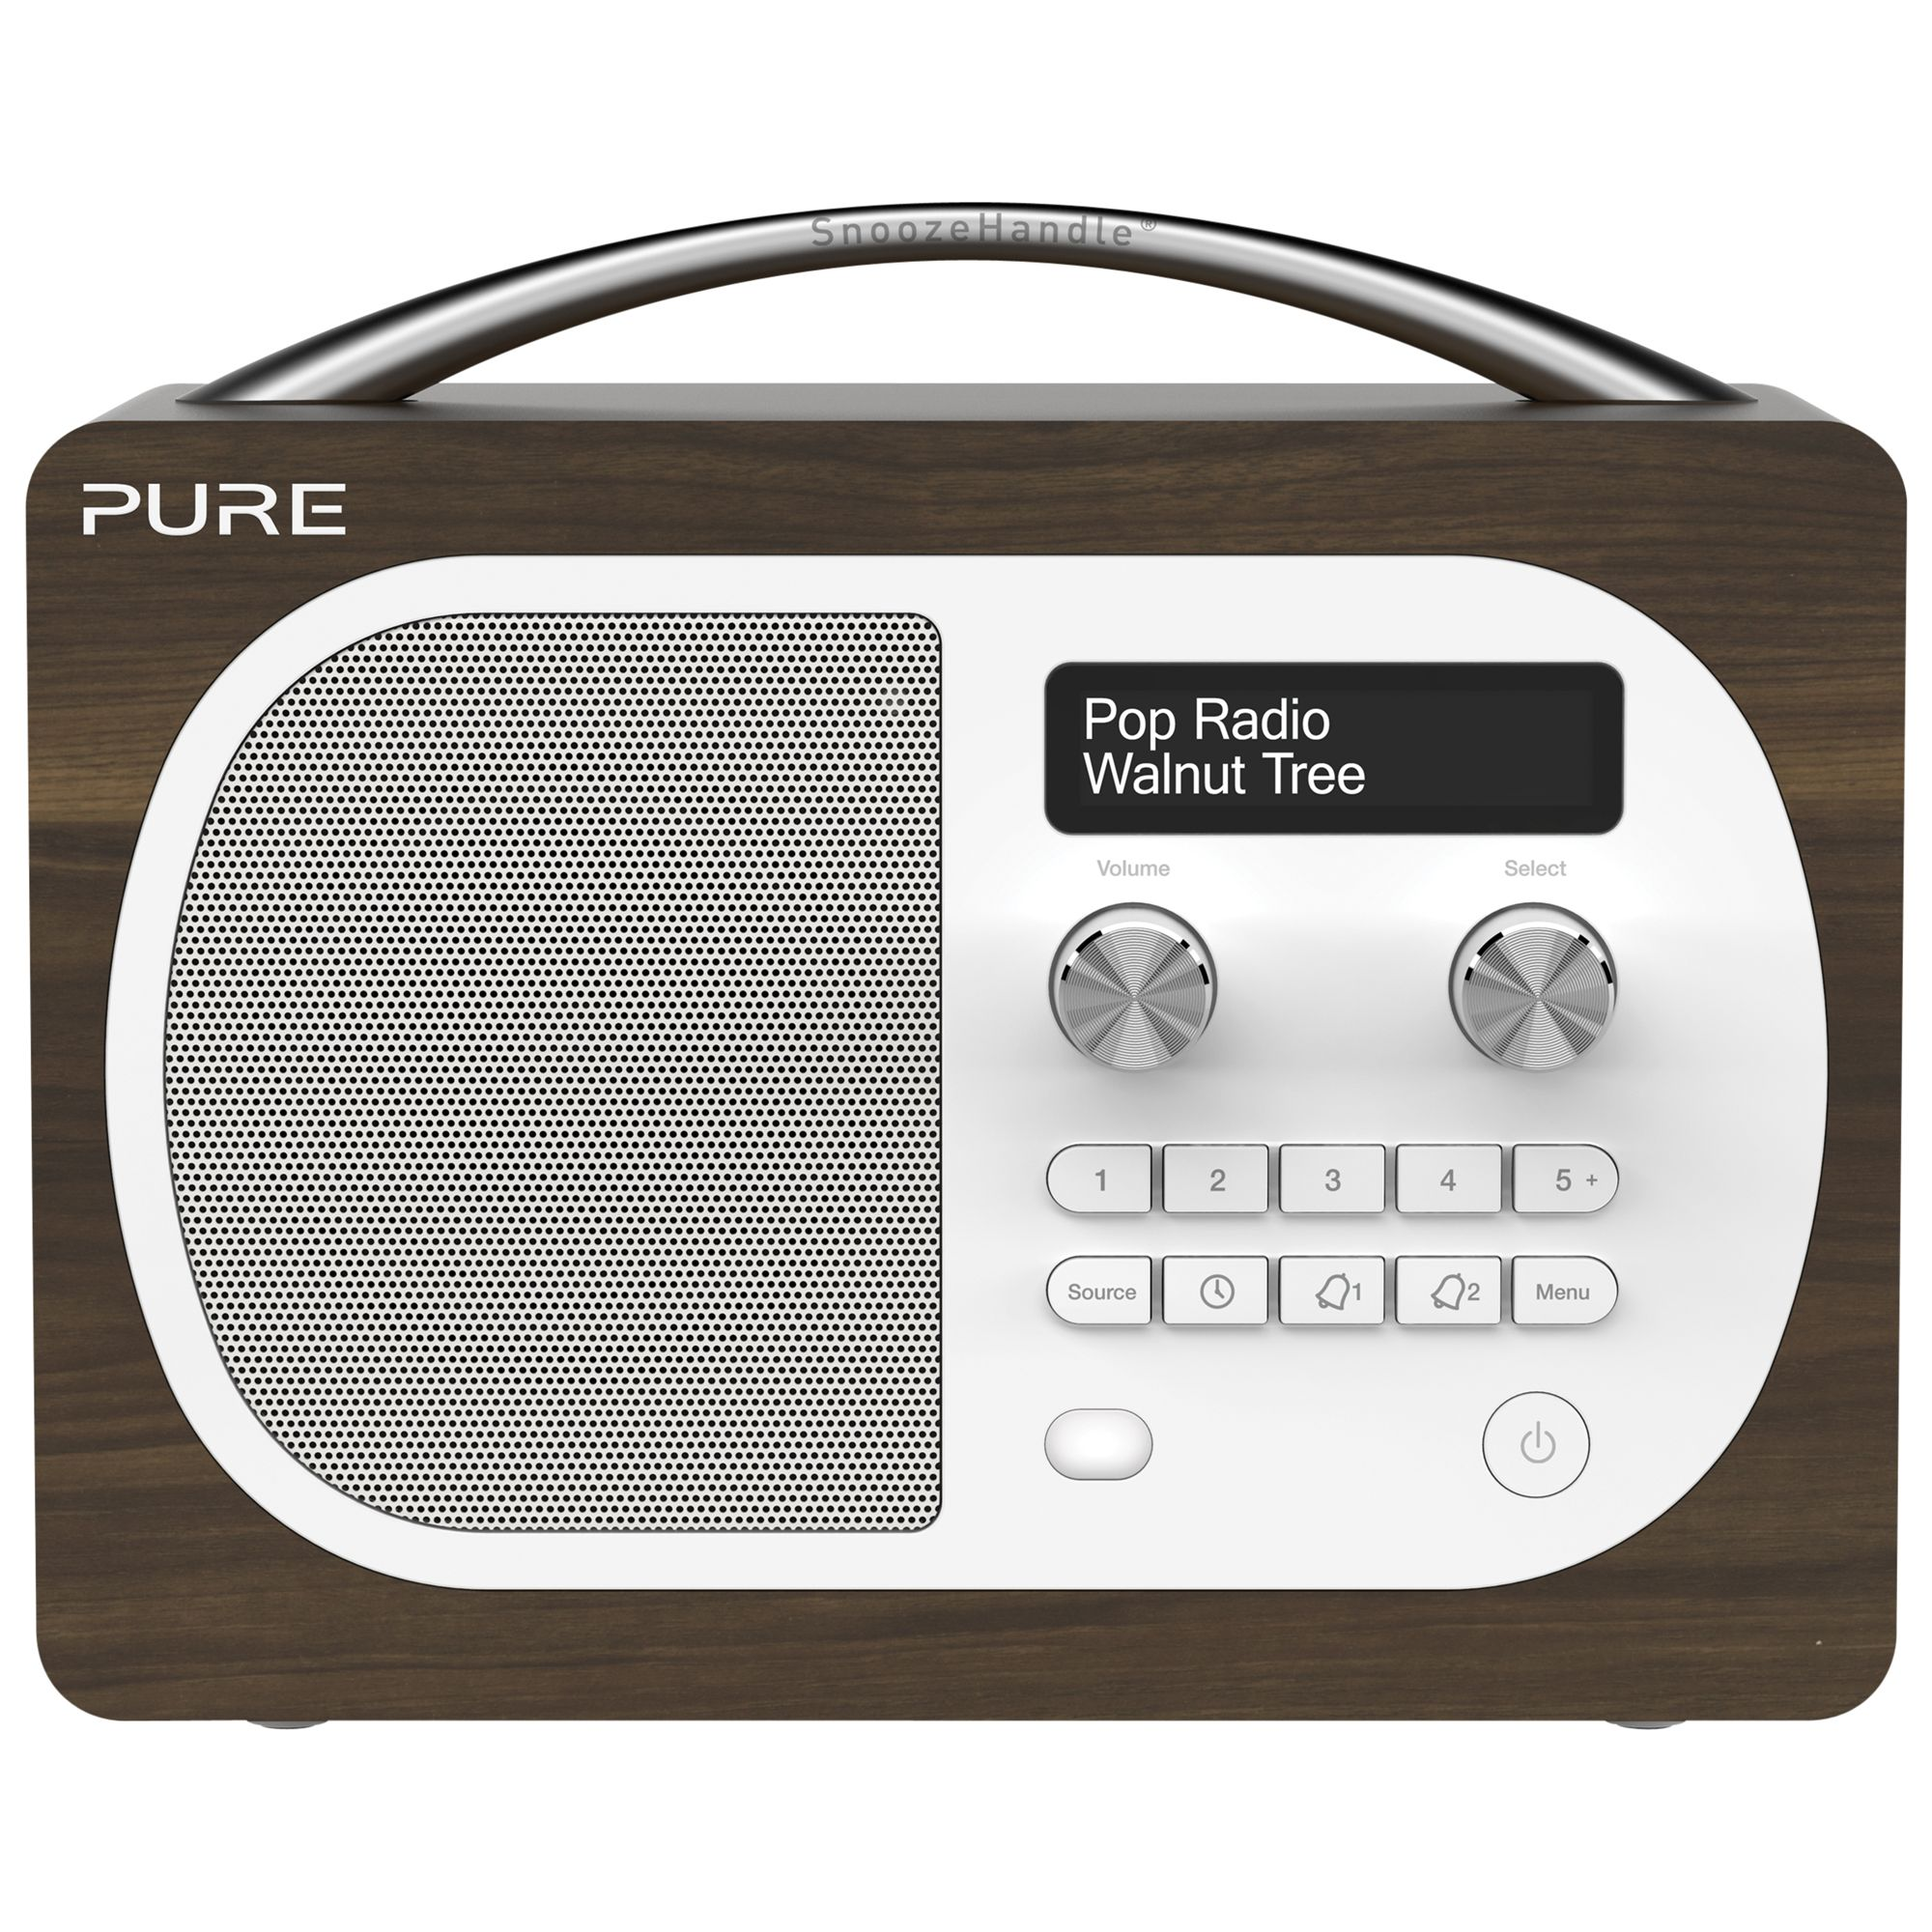 pure d4 dab radio compare prices at foundem. Black Bedroom Furniture Sets. Home Design Ideas